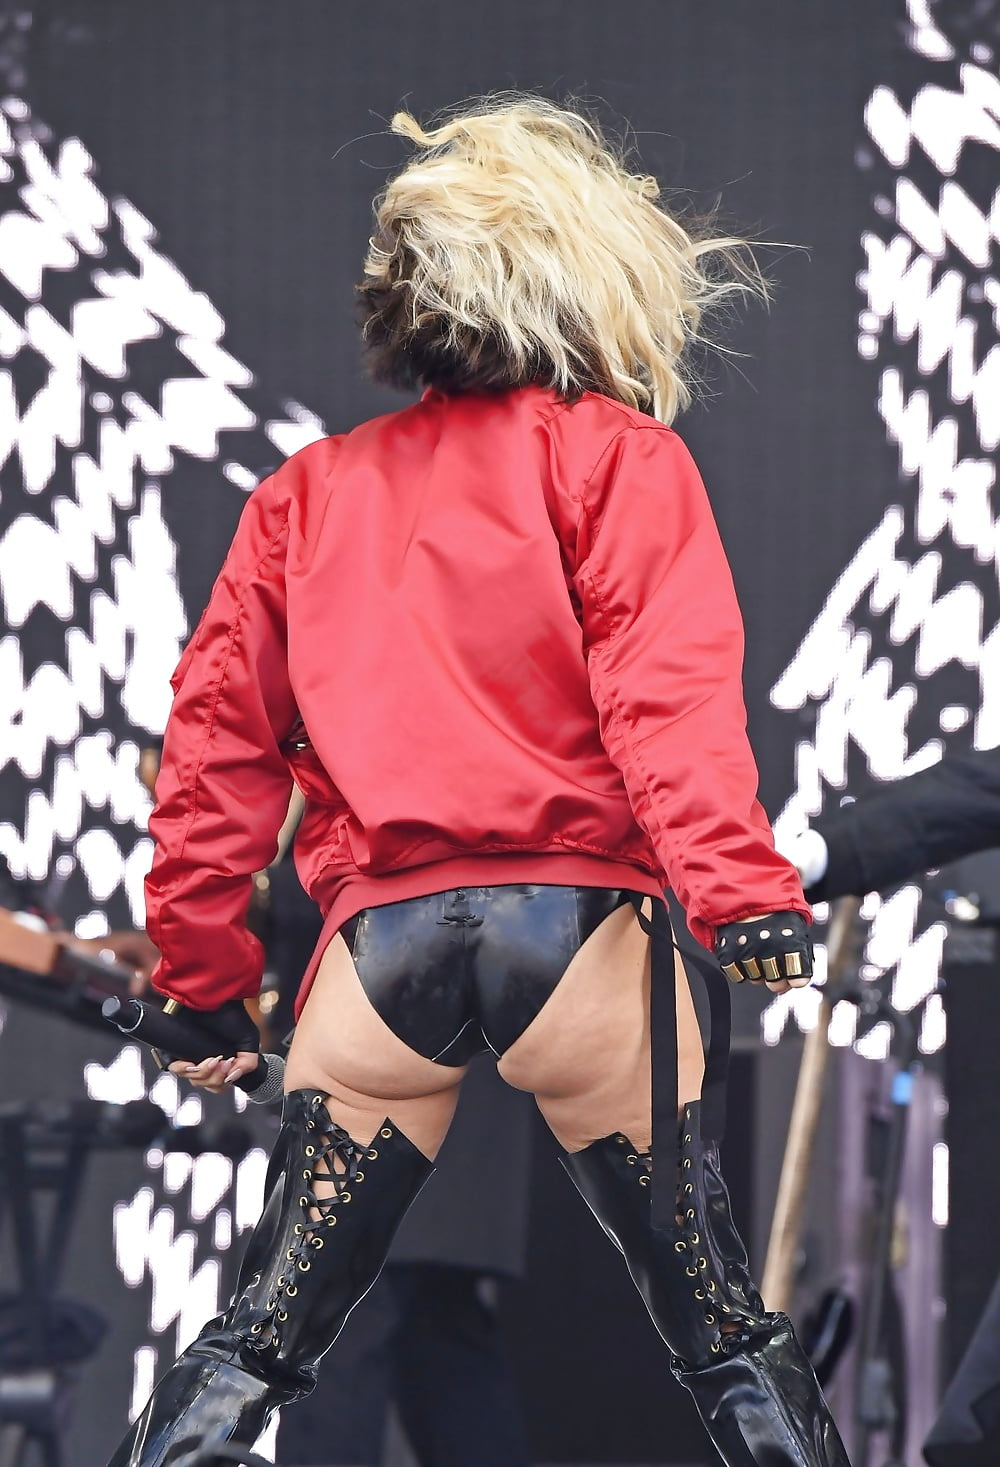 Ass fergie picture